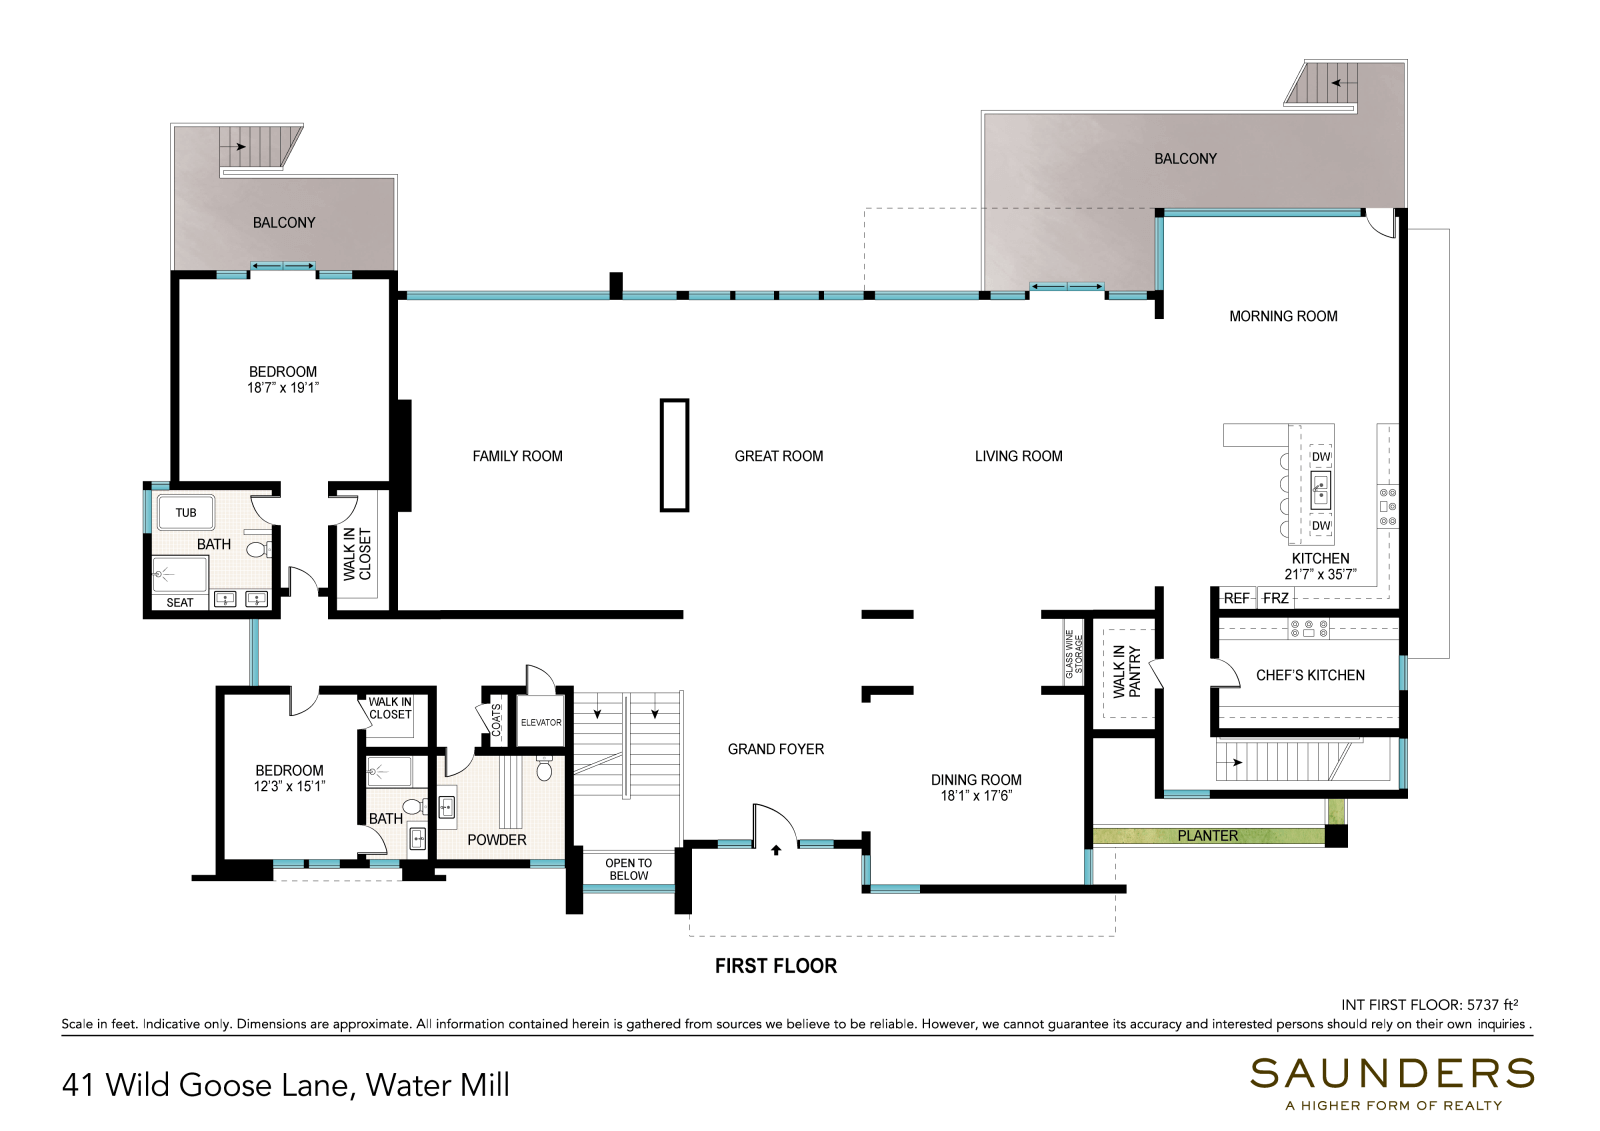 41 Wild Goose Lane First Floor (floor plan)